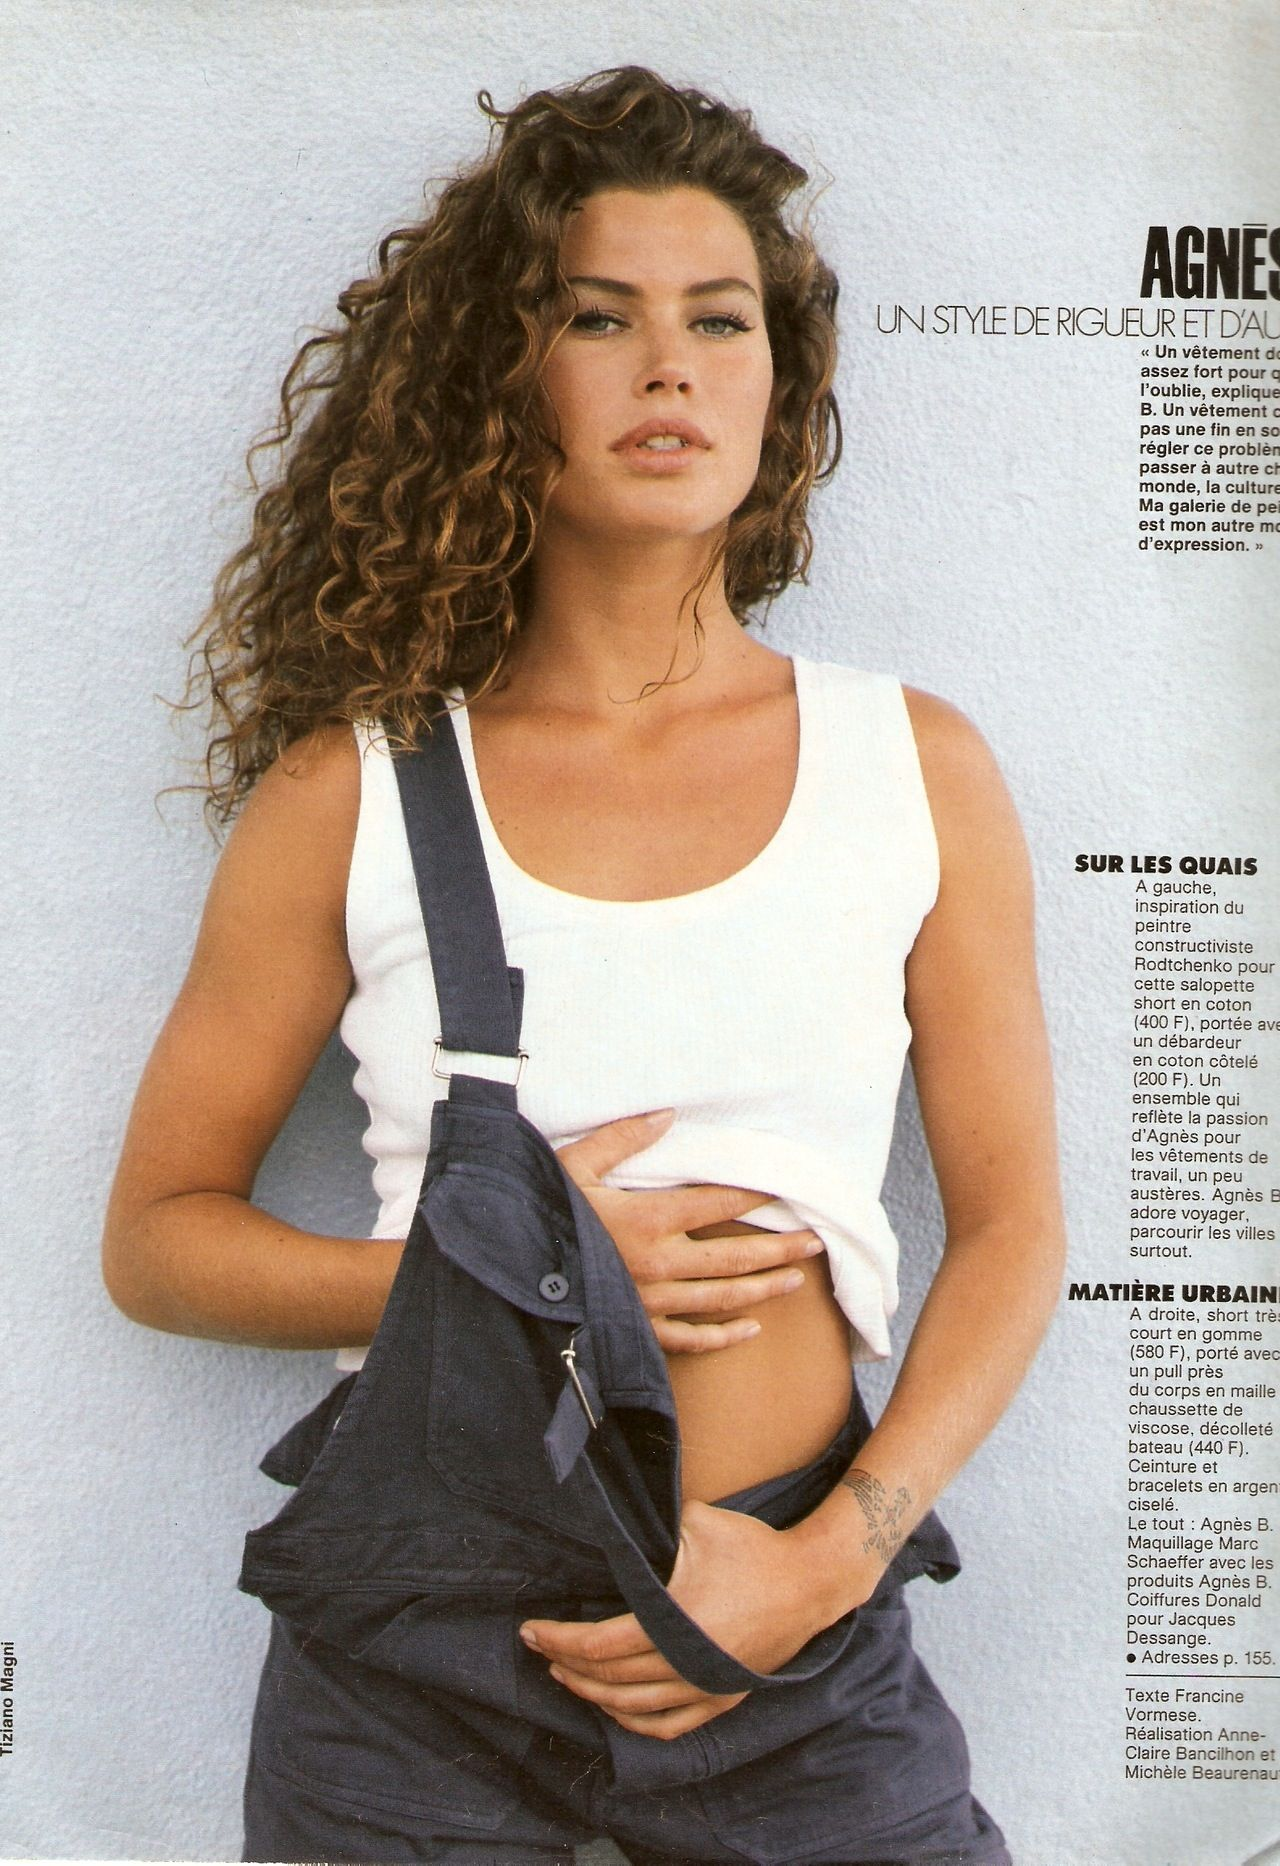 carre otis and her curls wild curly hair curly hair model curly girl